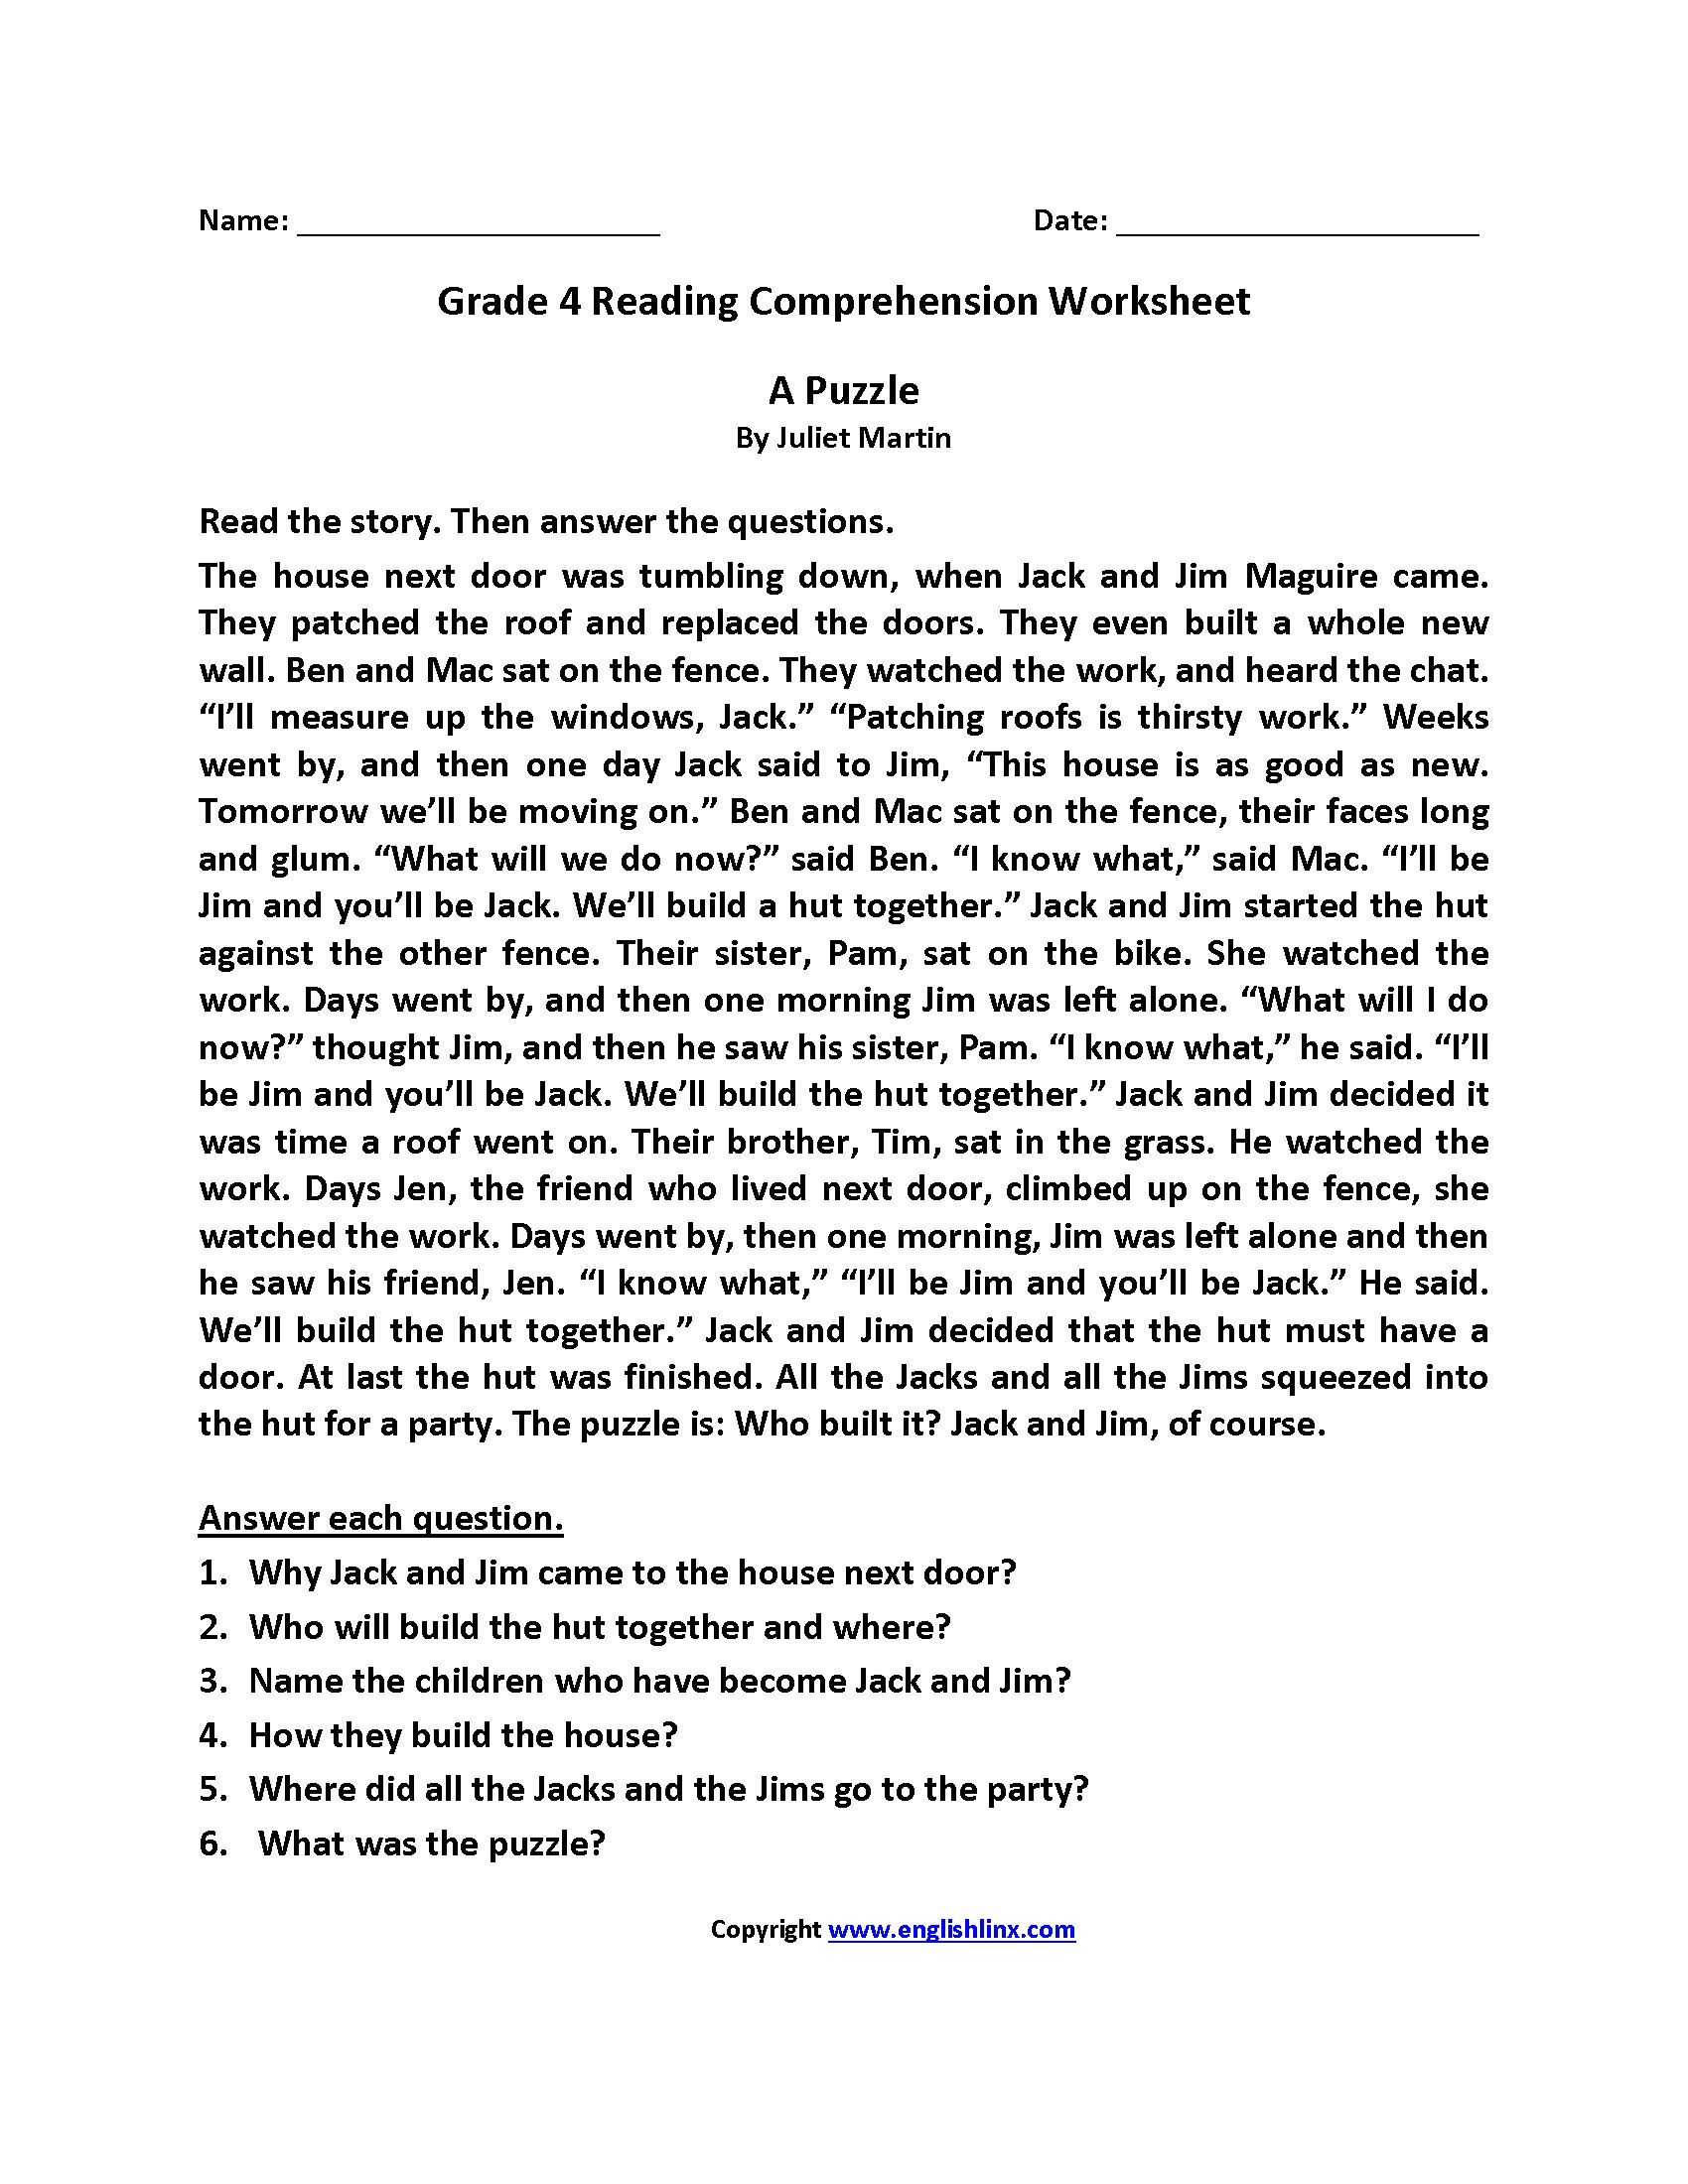 9th Grade Reading Comprehension Worksheet Prehension Worksheet Year 9 English